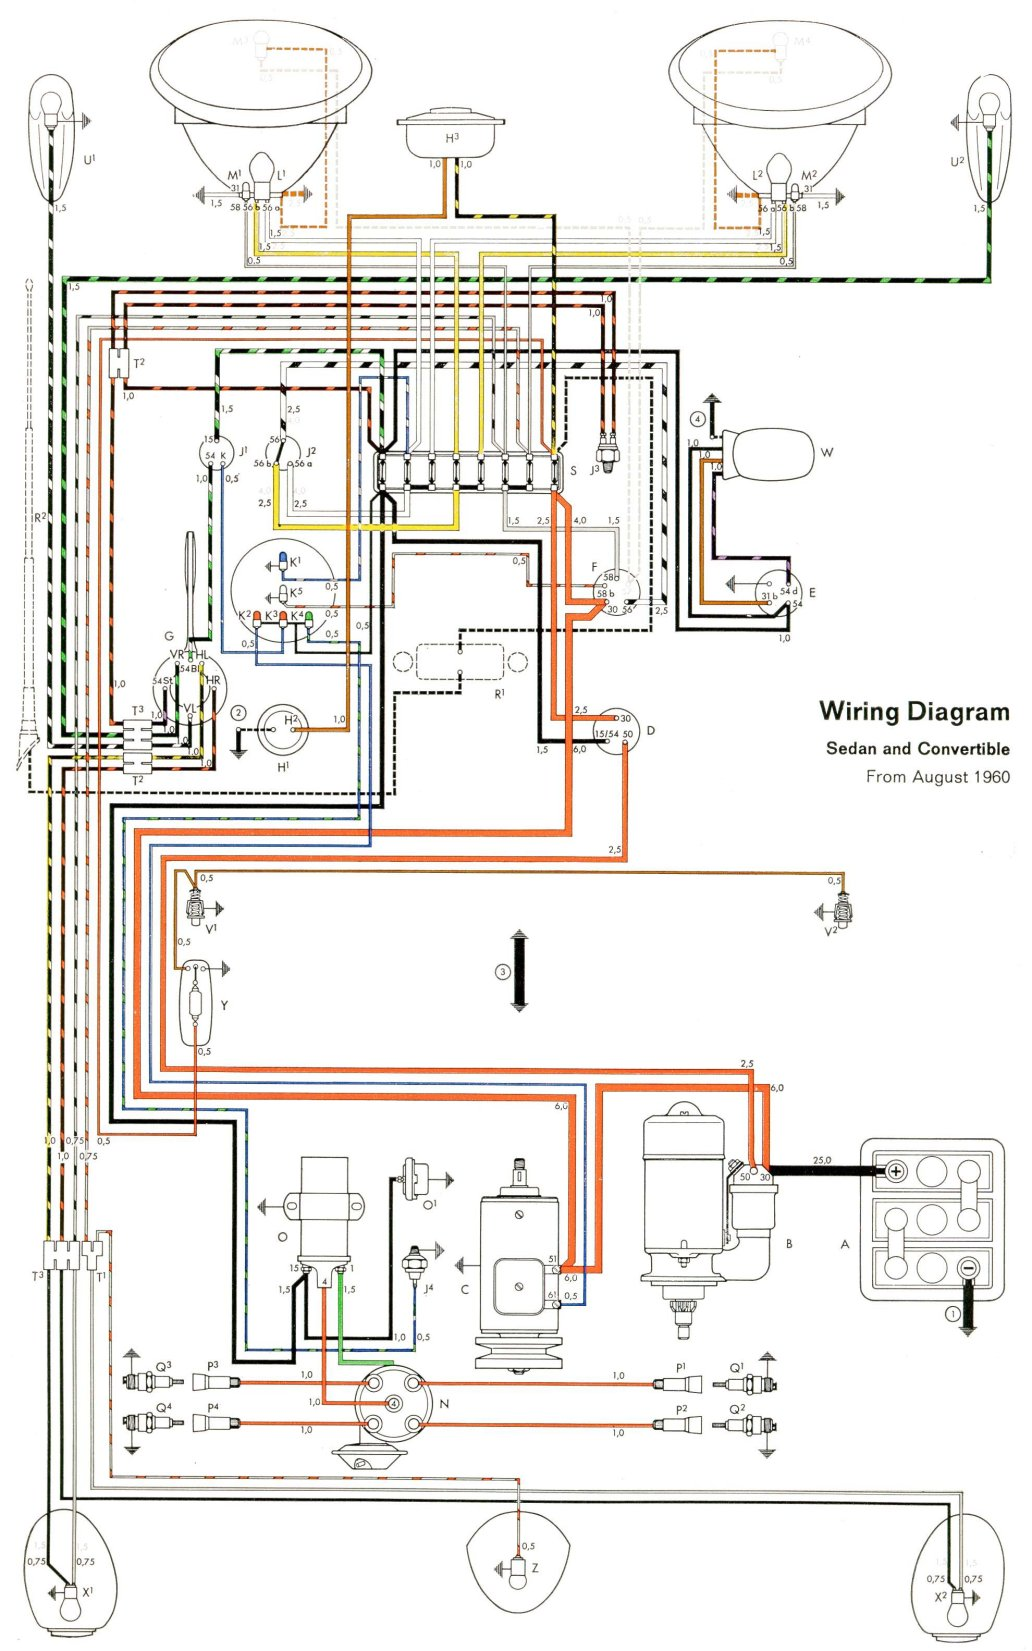 2002 Vw Beetle Alternator Wiring Diagram : Thesamba type wiring diagrams